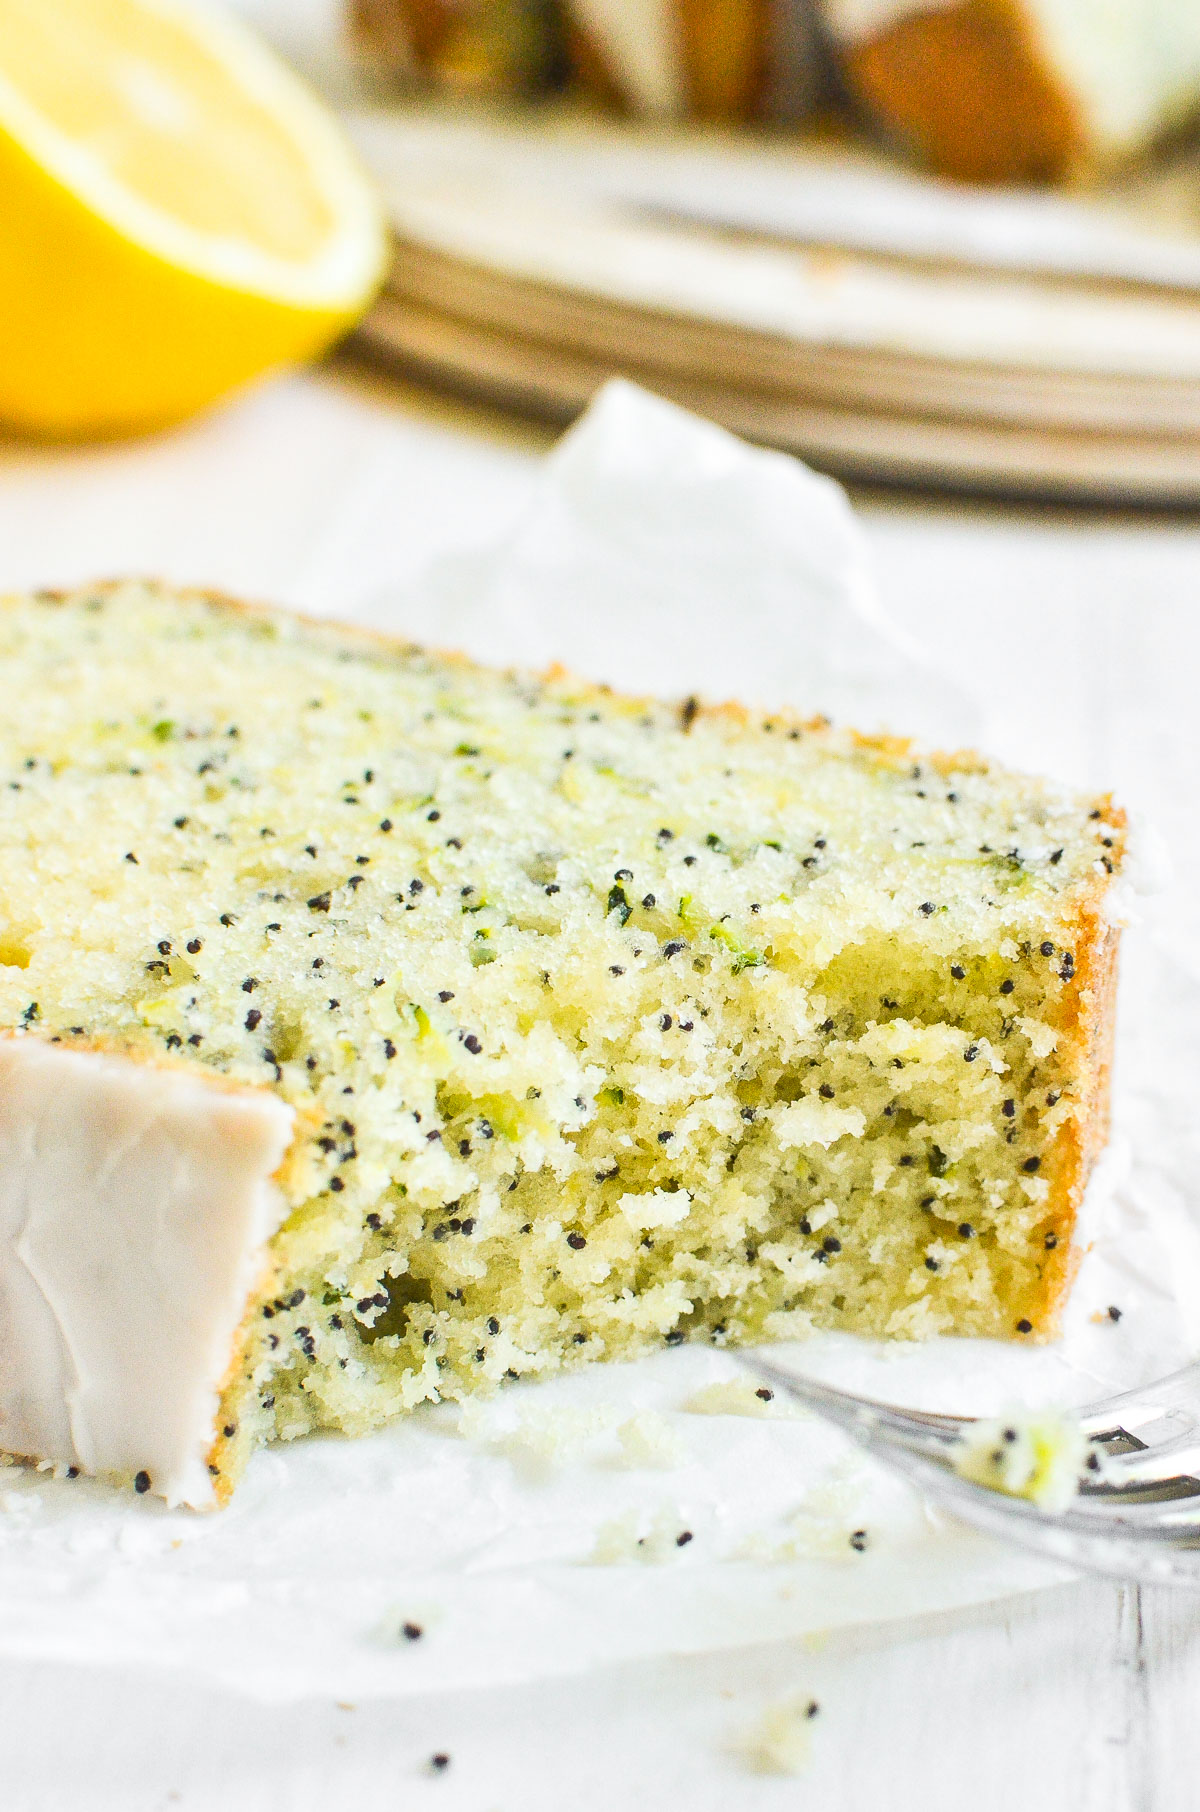 A slice of lemon poppy seed zucchini bread with a fork.